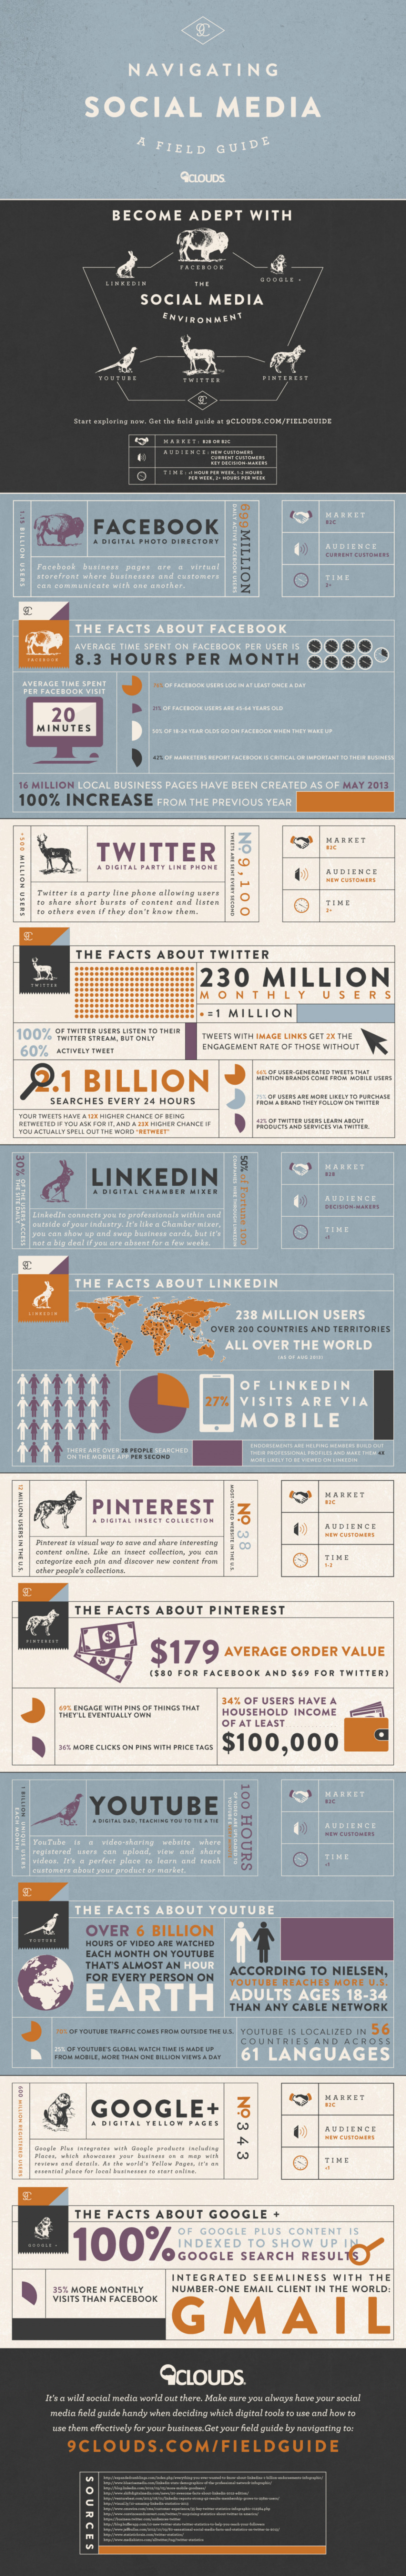 Navigating Social Media: A Field Guide  Infographic